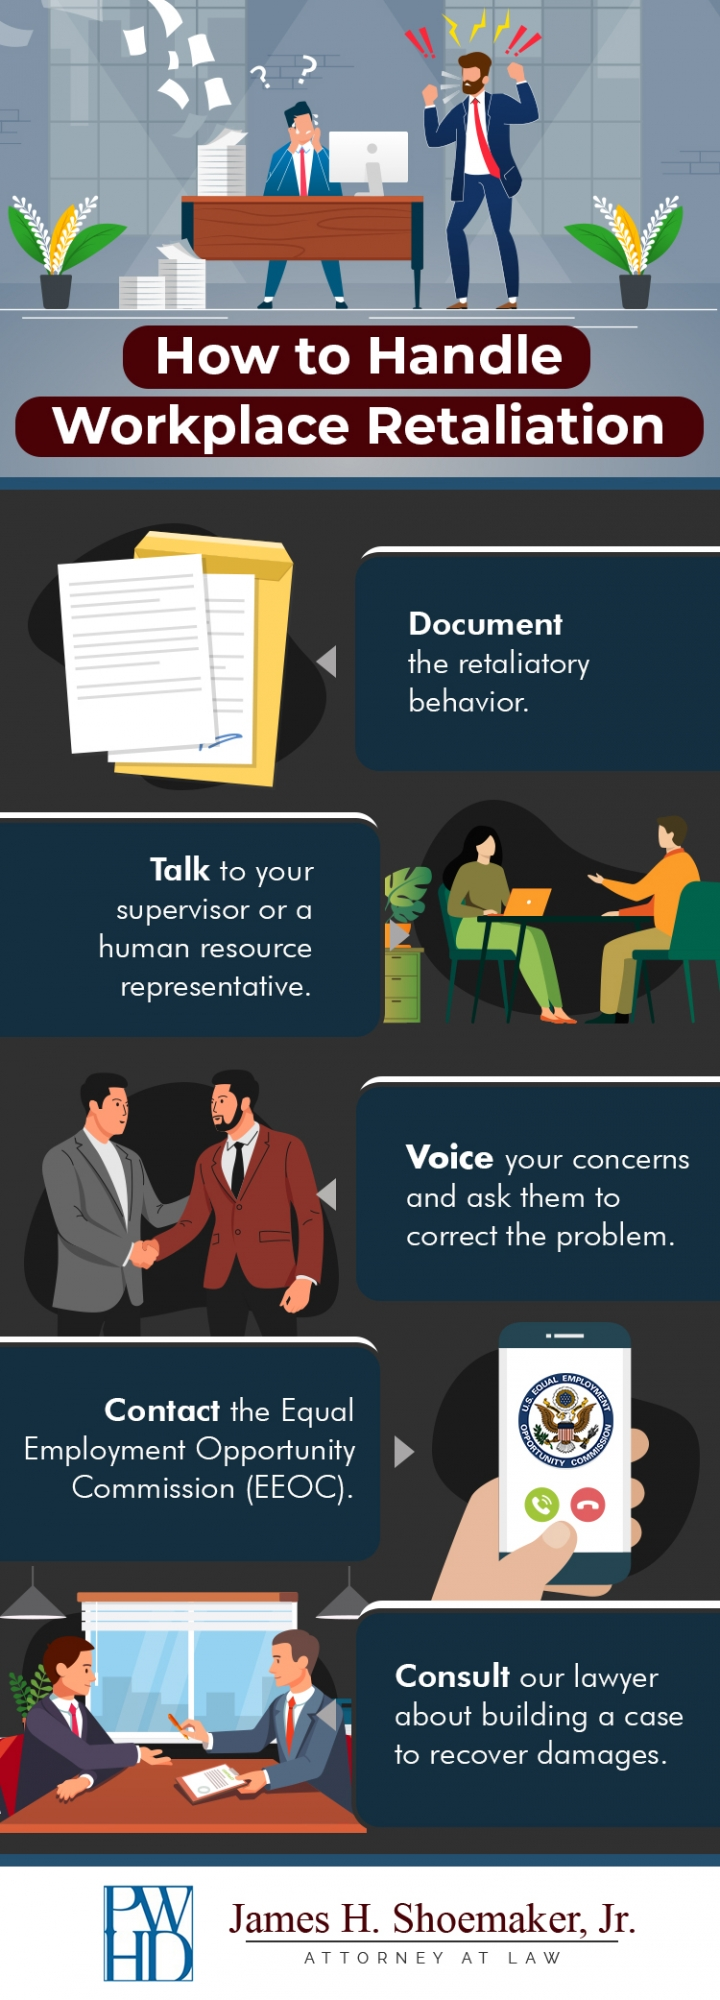 How to handle workplace retaliation infographic